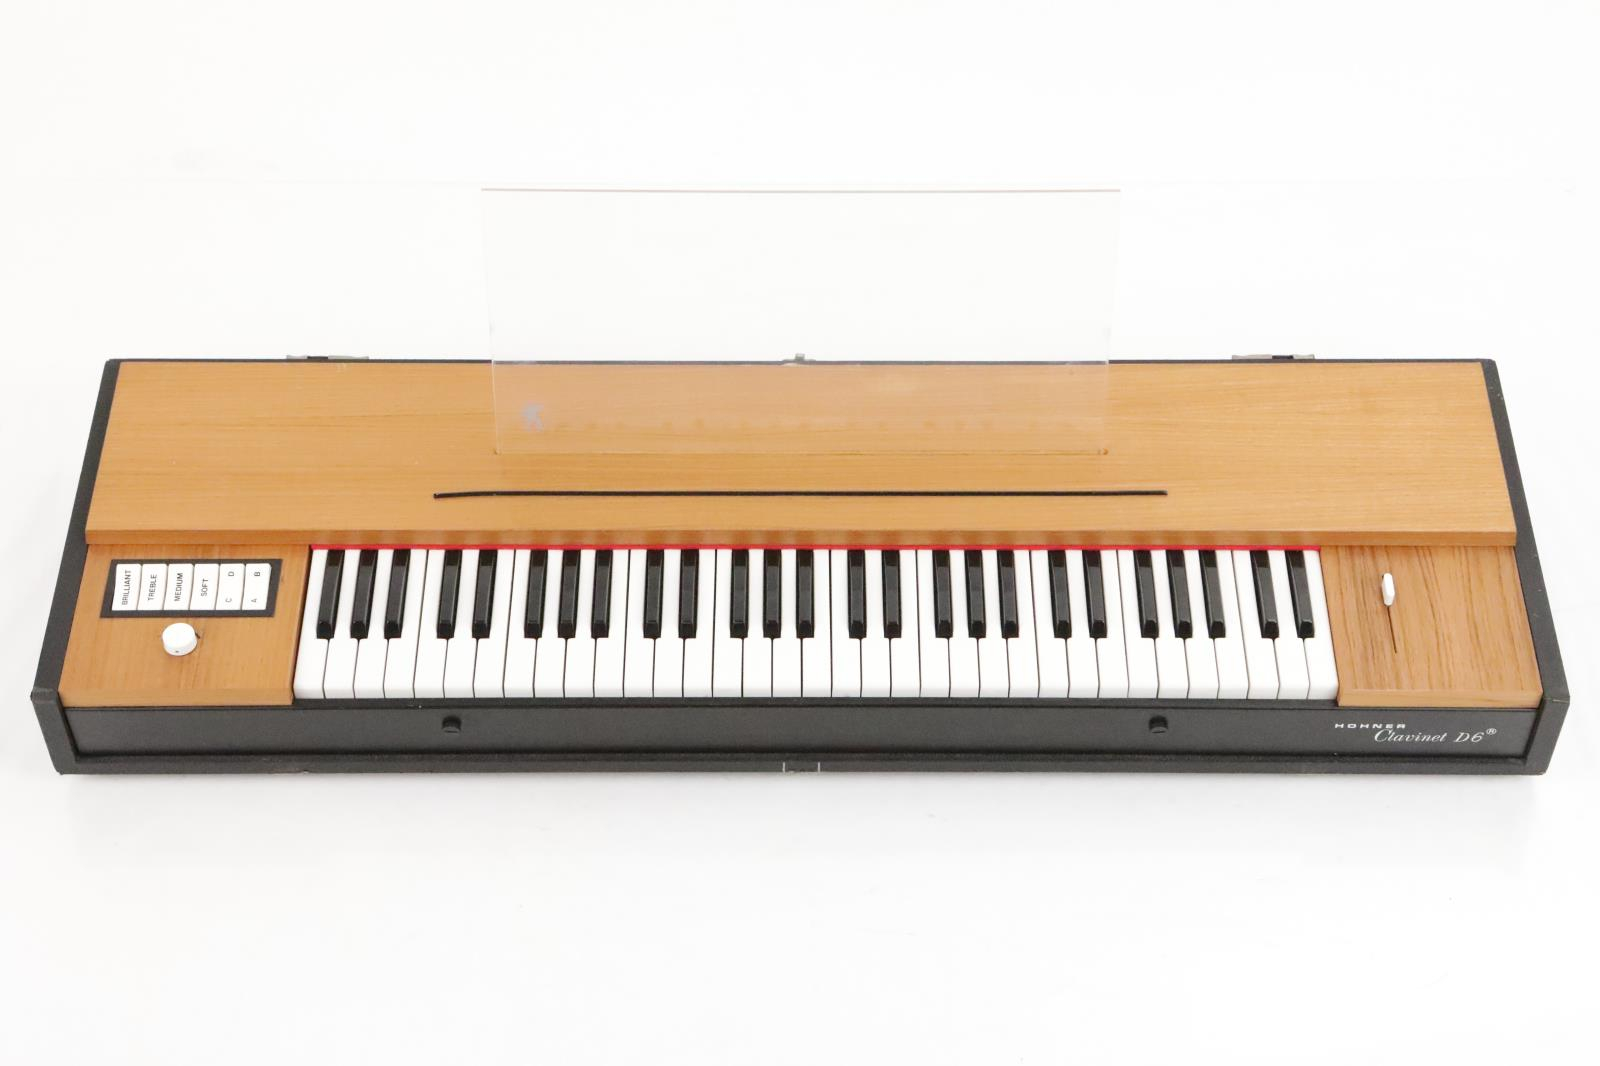 Hohner Clavinet D6 Keyboard w/ Gig Bag Lid Music Stand & Sustain Pedal #35239